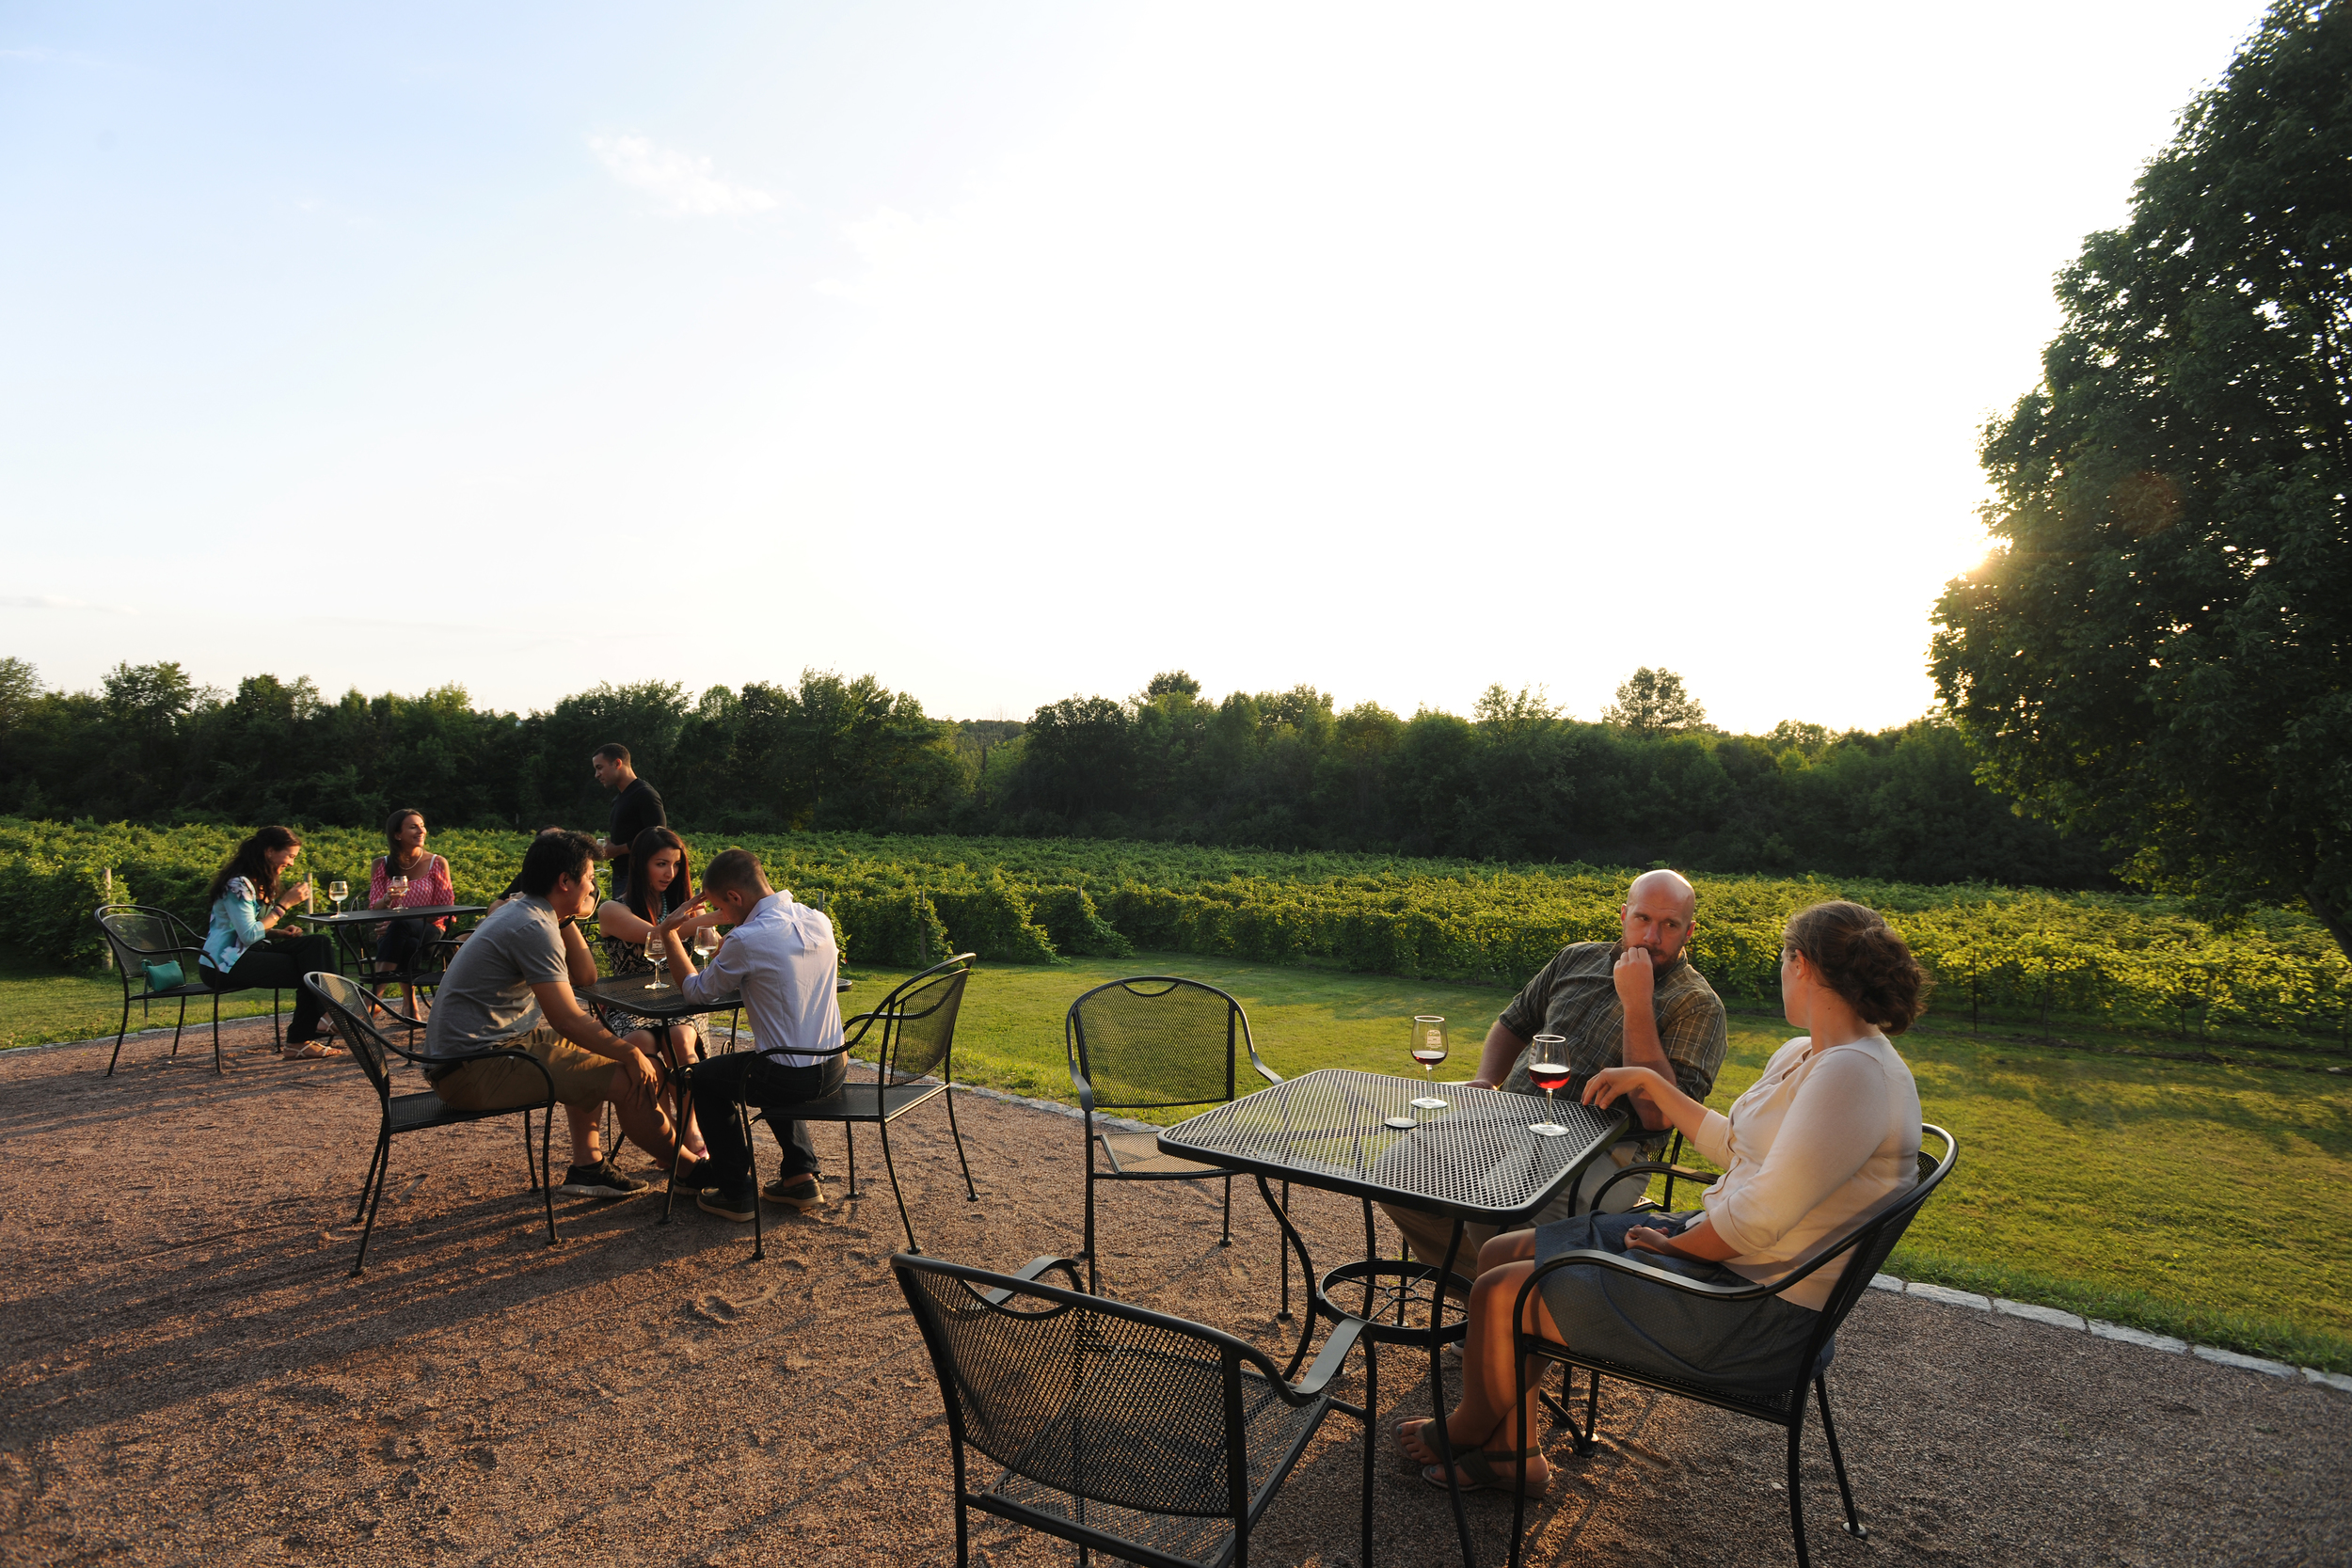 vineyard view and people on the patio